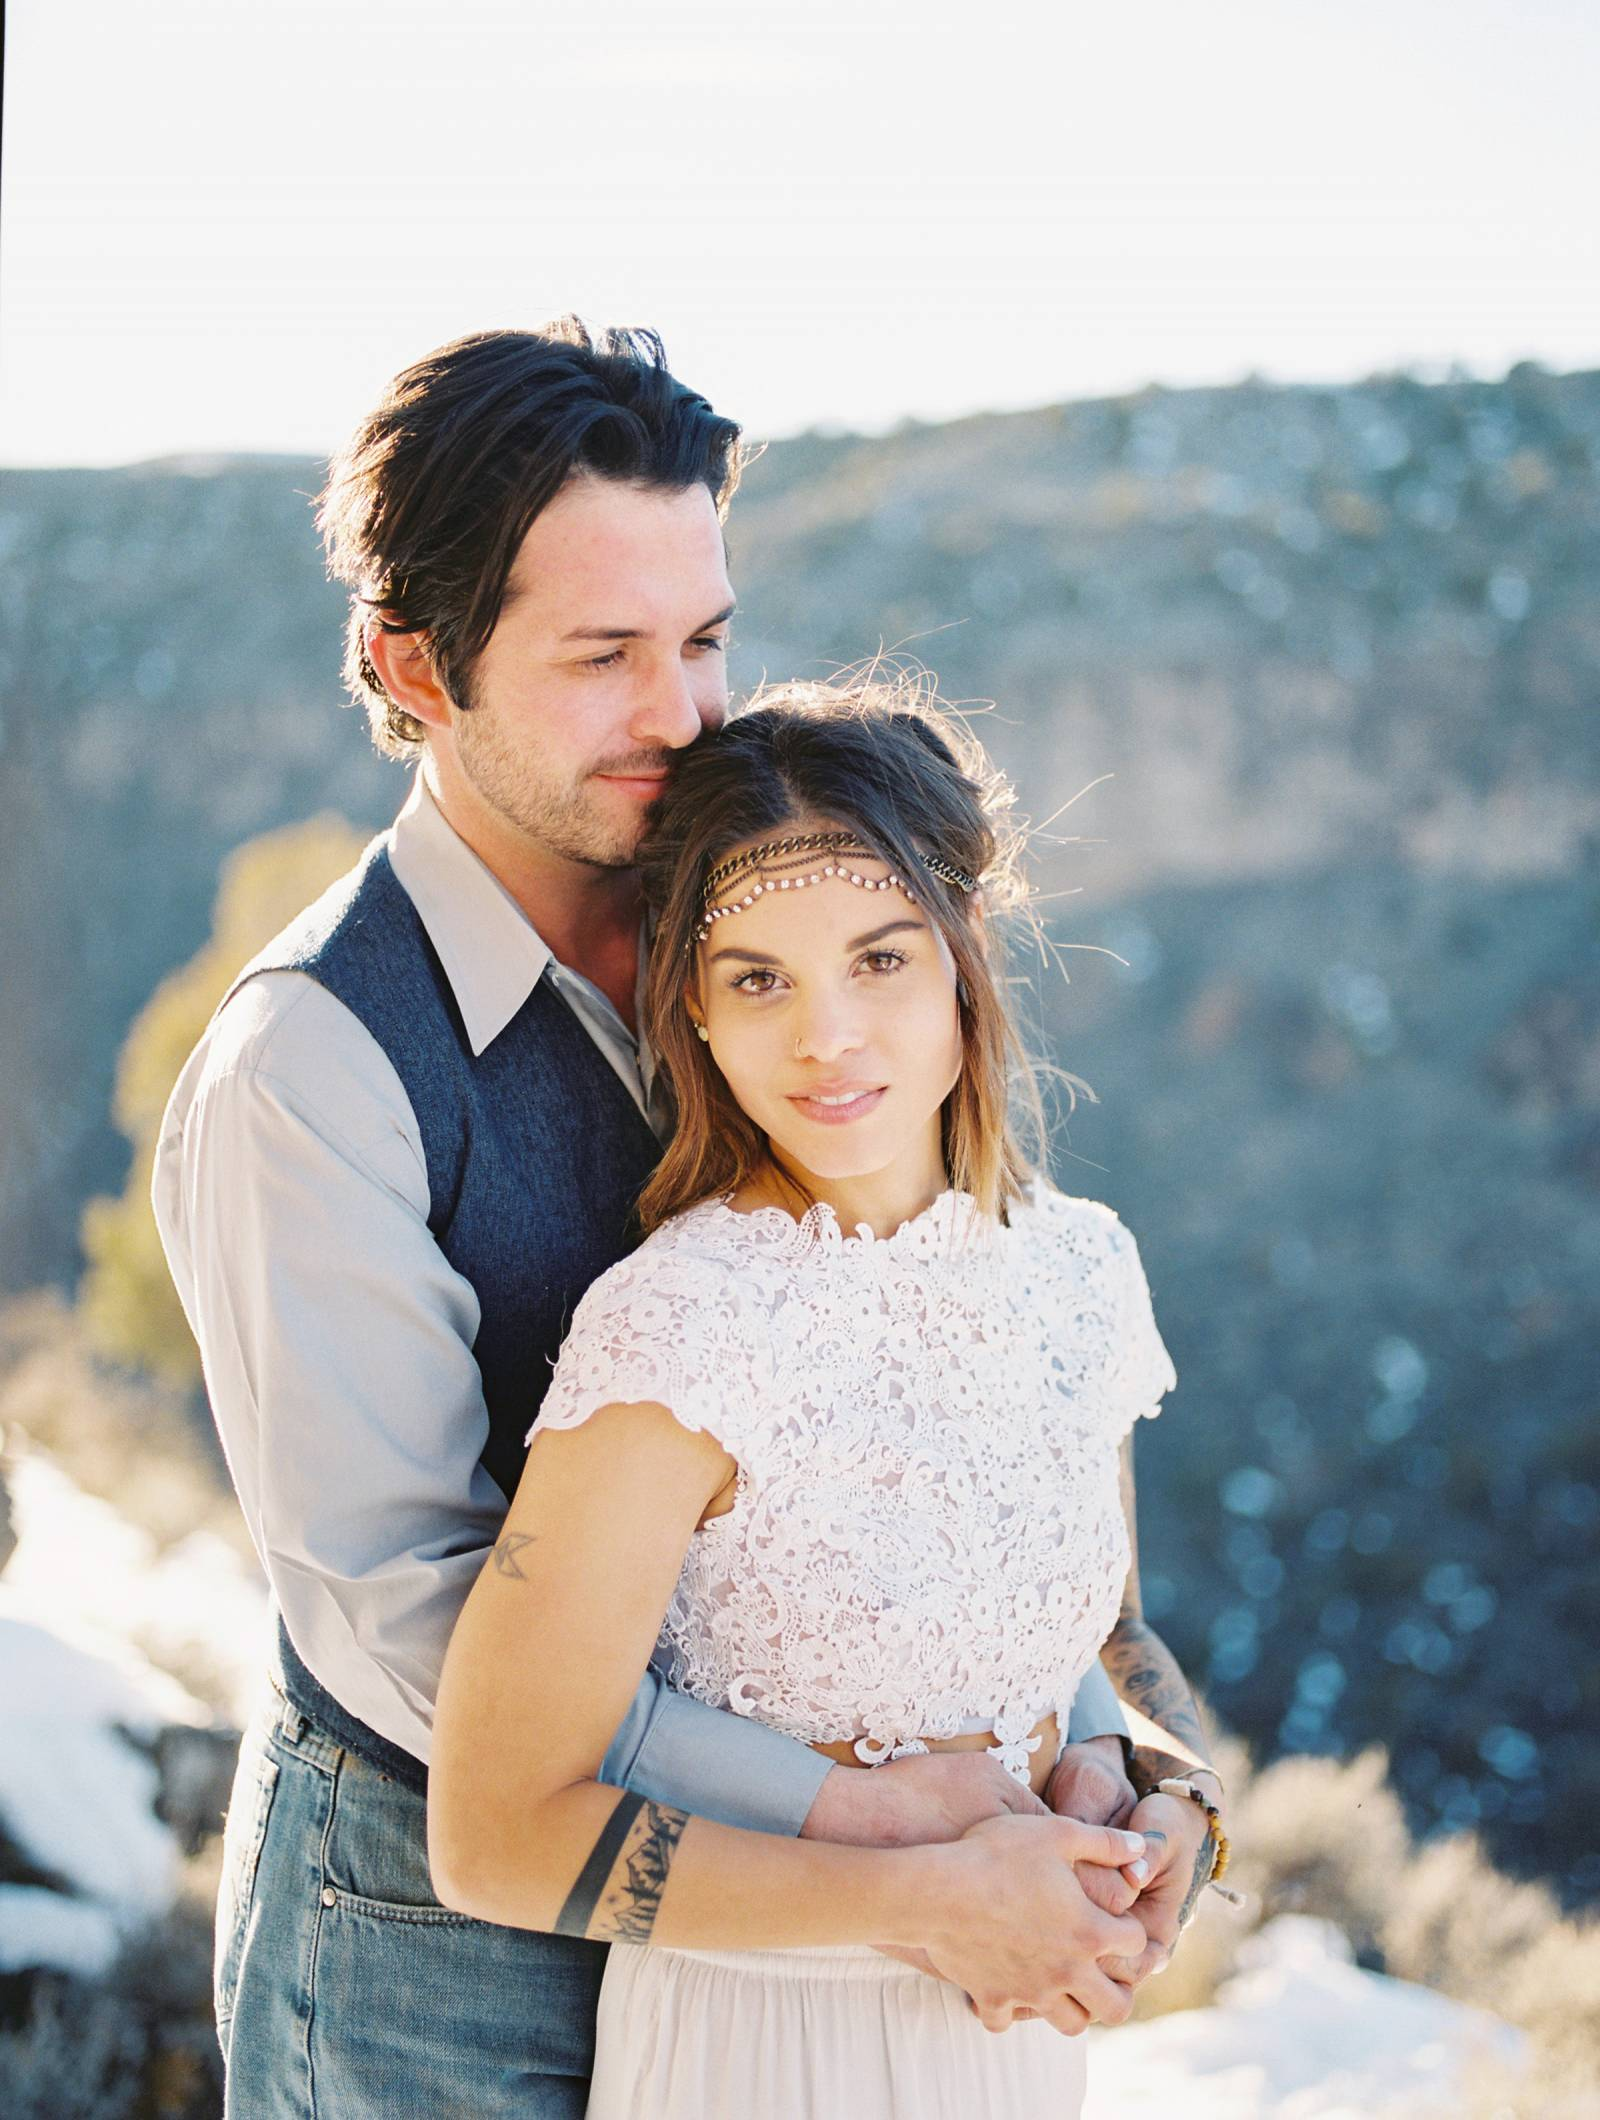 Urban Mountain-side anniversary session in Taos, New Mexico | New